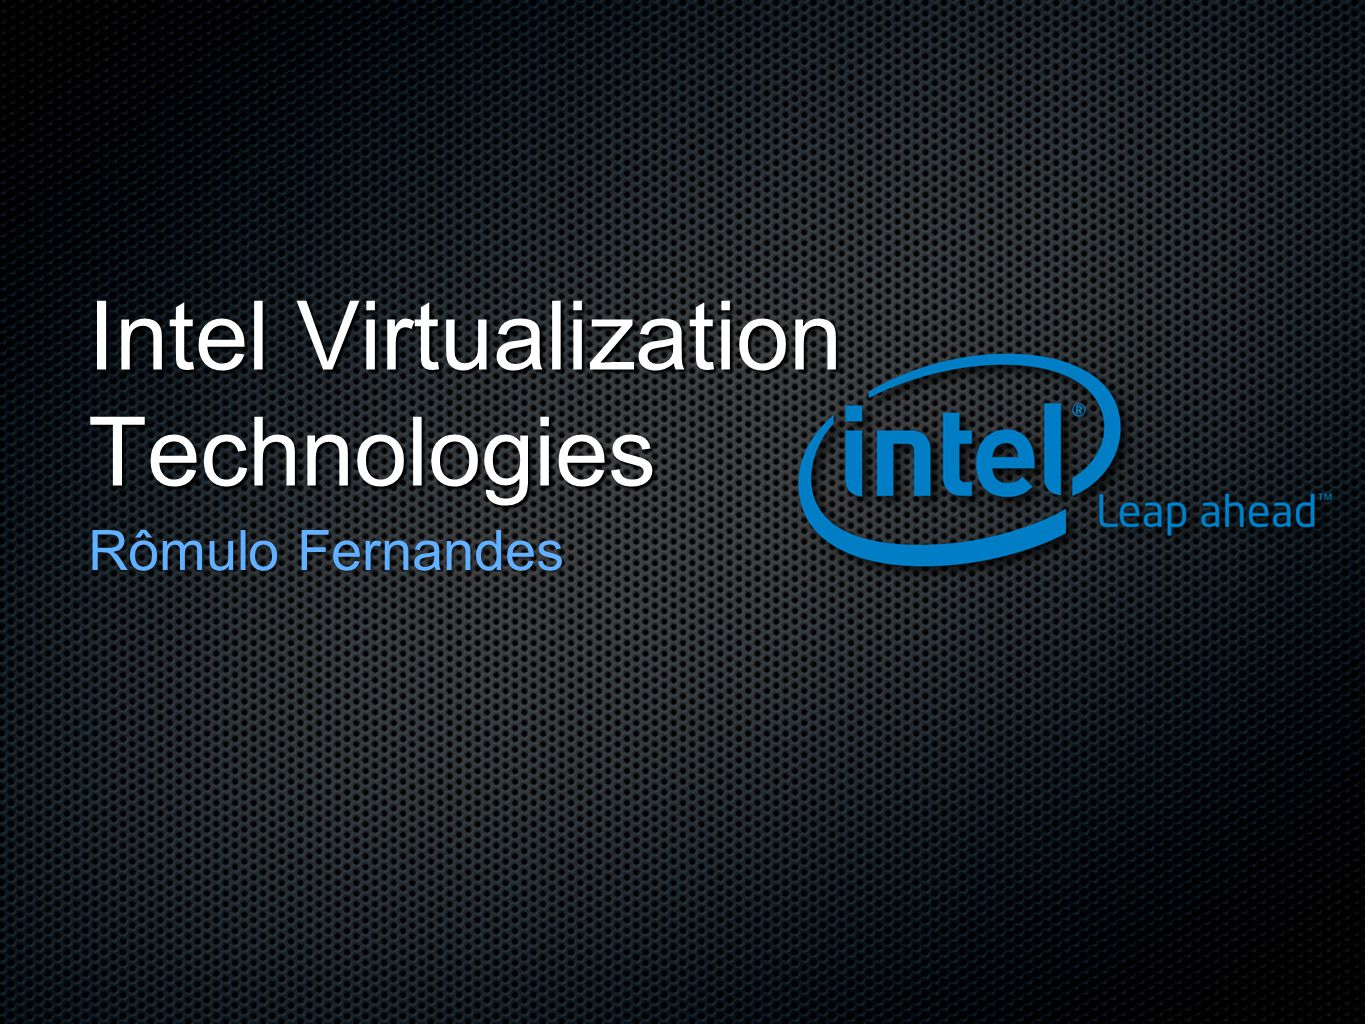 Intel Virtualization Technologies